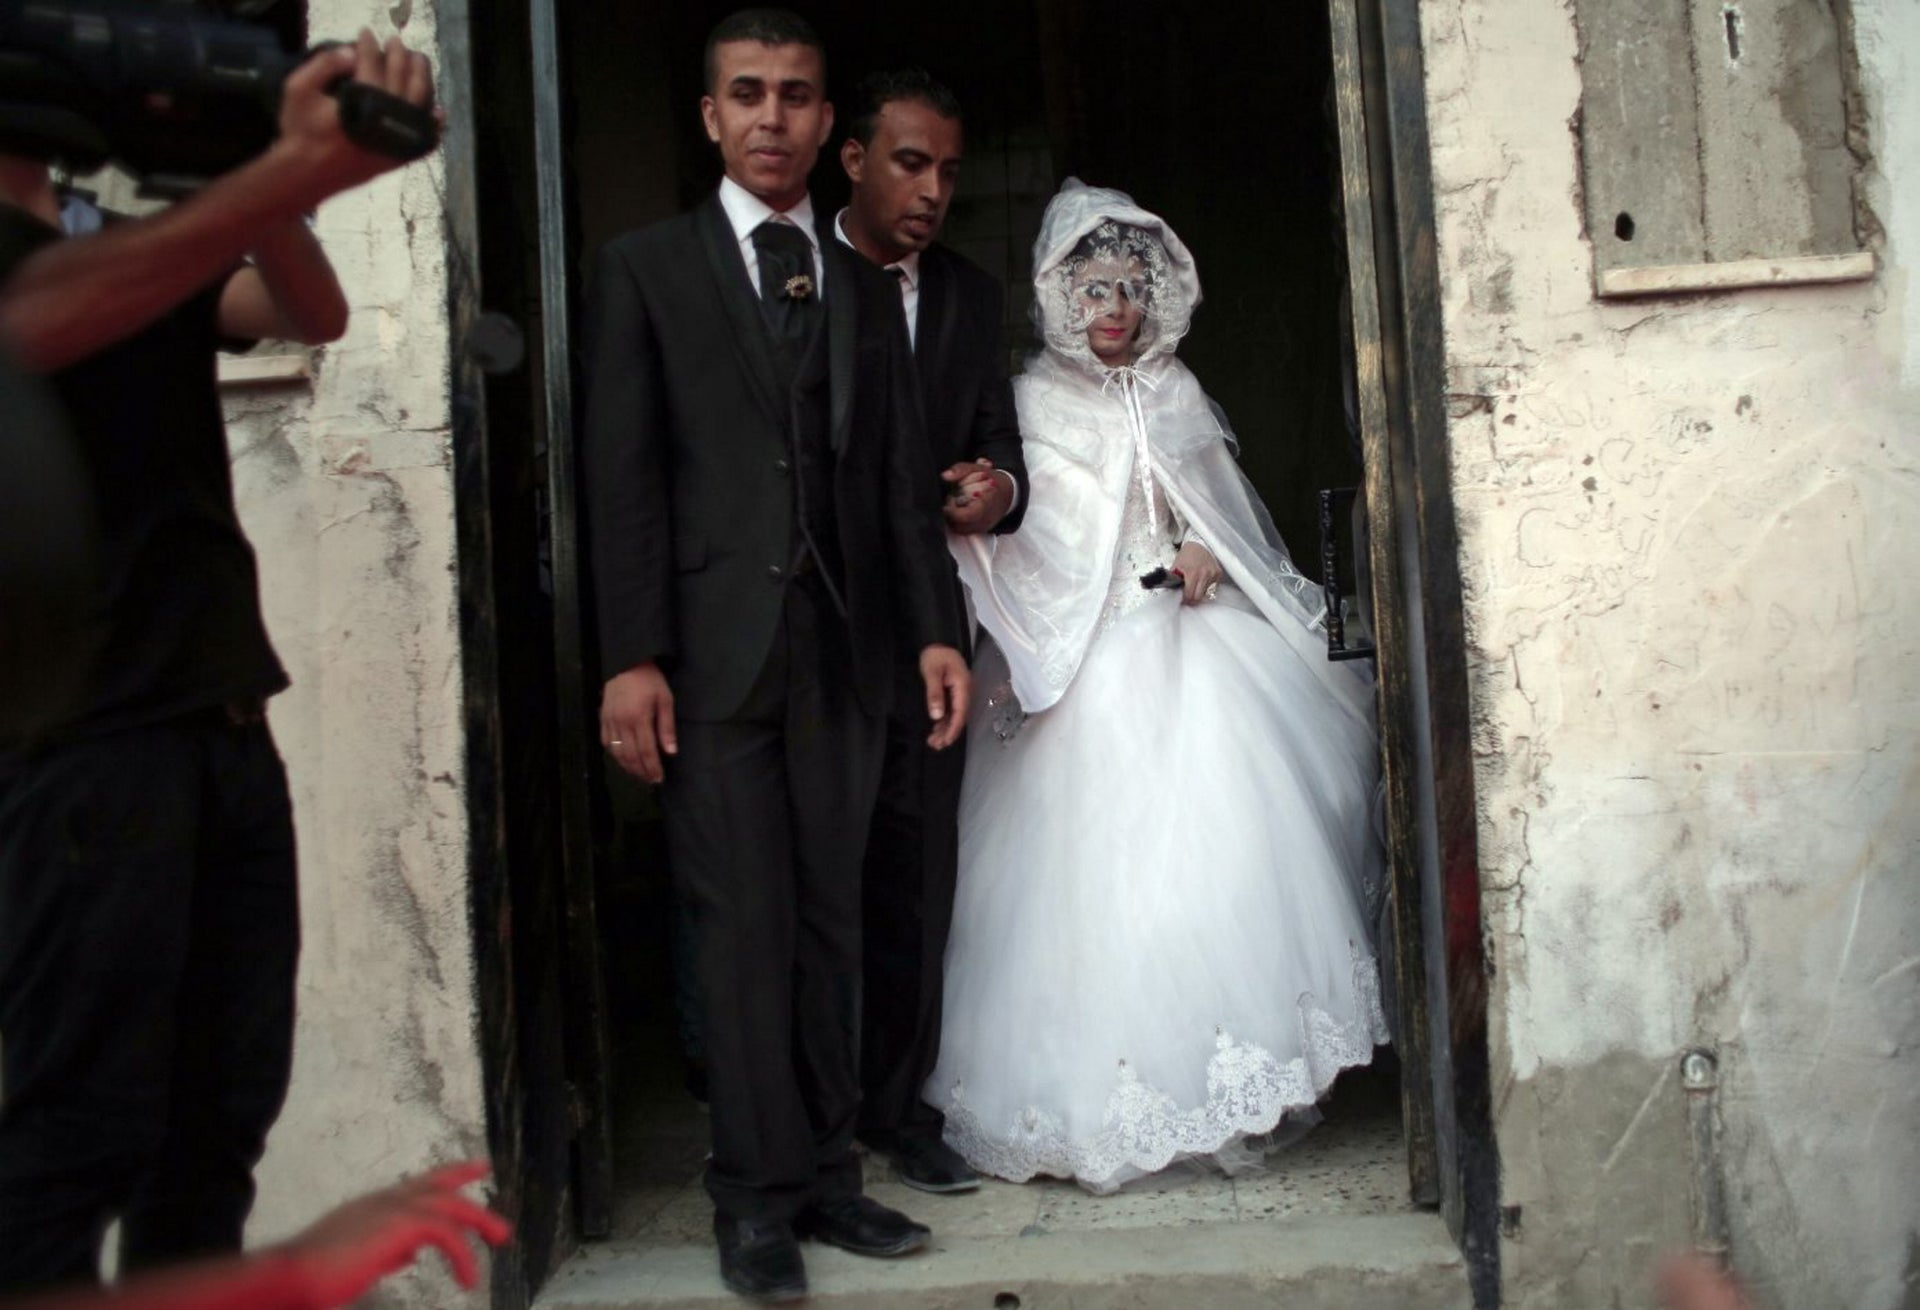 In this Saturday, July 30, 2016 photo, Palestinian groom Saed Abu Aser, 22, walks with his bride, Falasteen, out of her family house to the wedding hall to celebrate their wedding, in Gaza City.